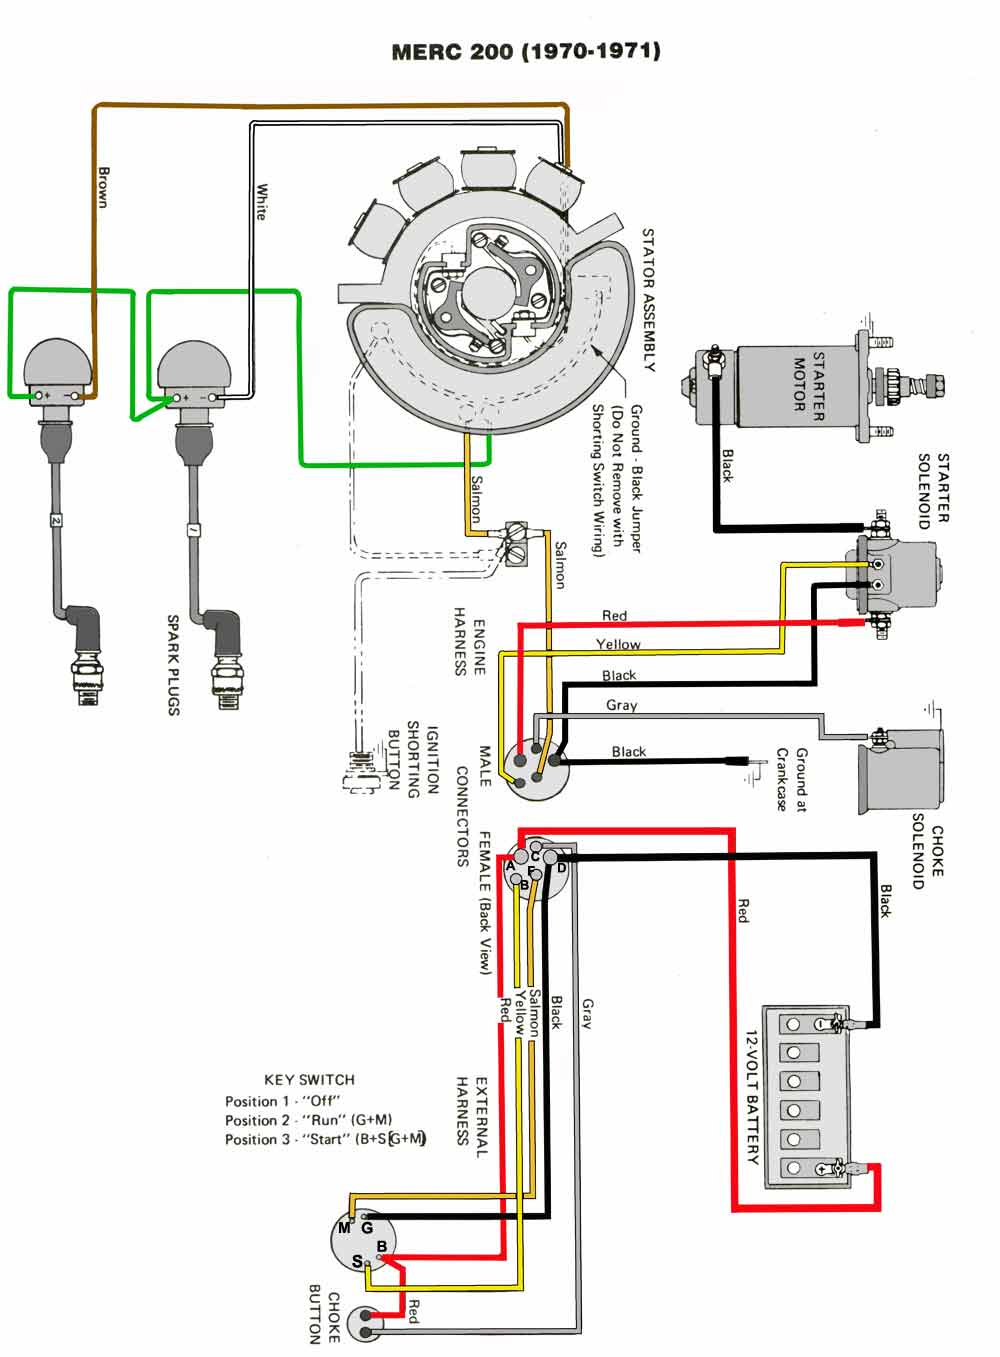 1975 Mercury Comet Wiring Diagram - DIY Wiring Diagrams • on mercury comet upholstery, mercury comet hubcaps, mercury comet tail lights, mercury comet rear axle, mercury comet dash, mercury comet interior,